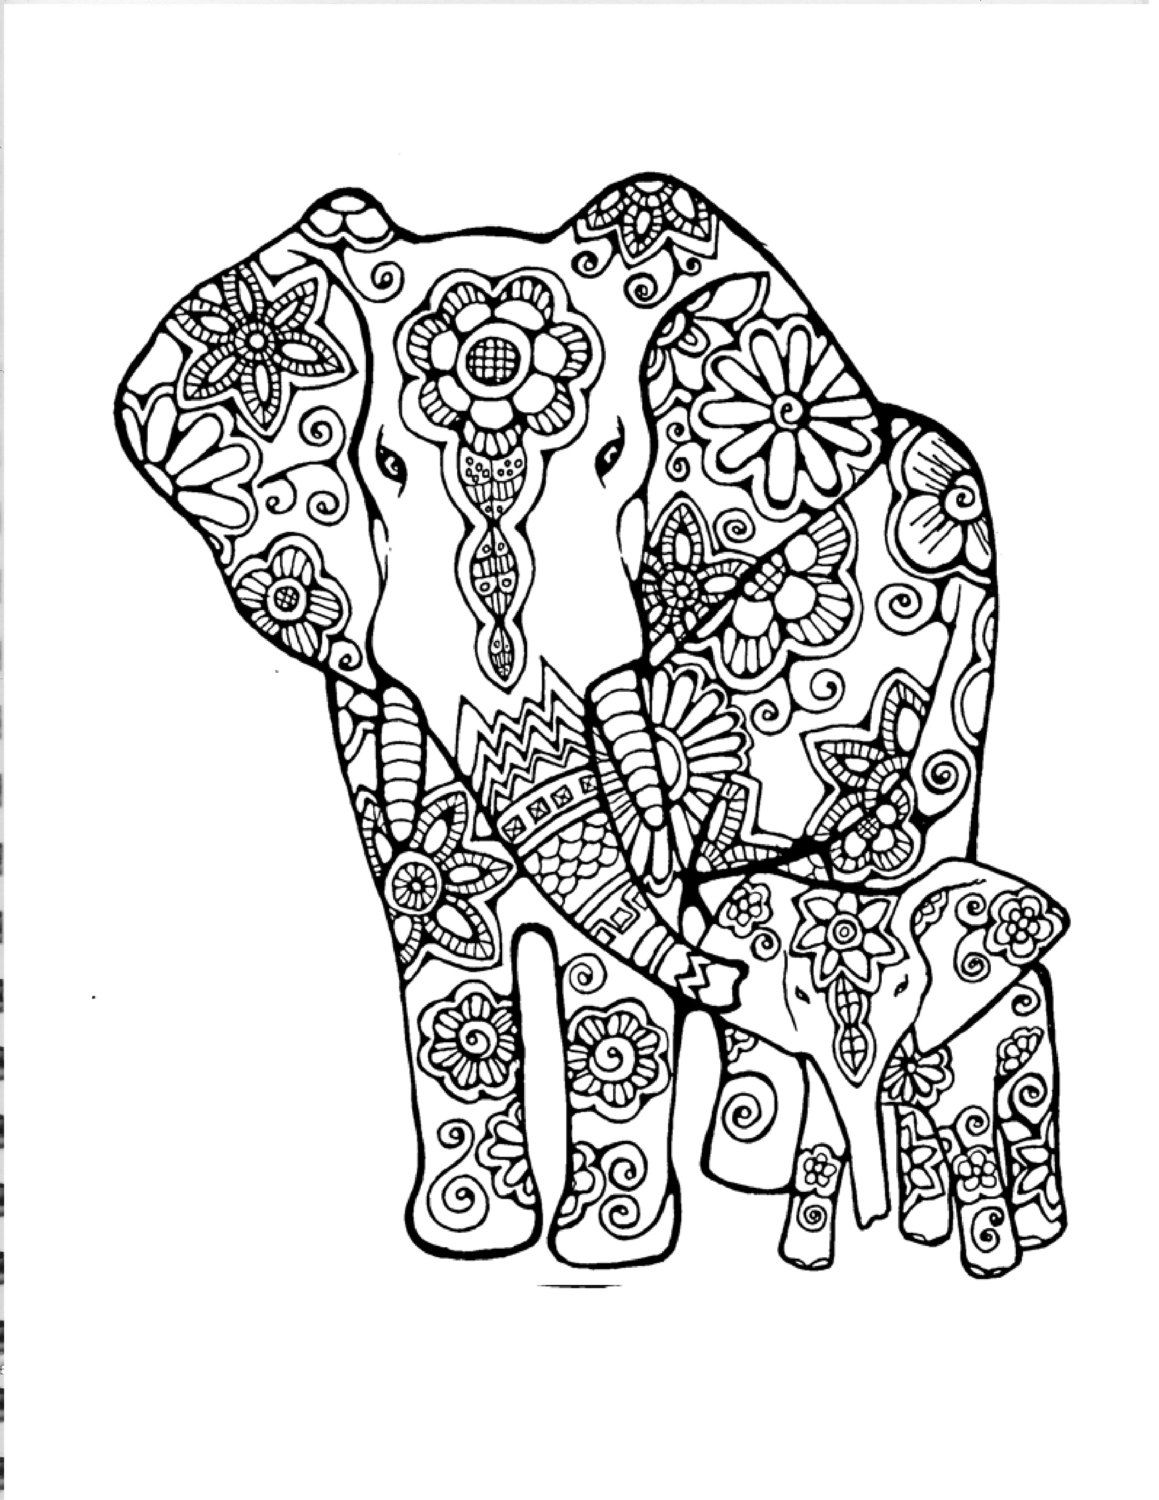 Adult Coloring Page:Original Hand Drawn Art in Black and White ...